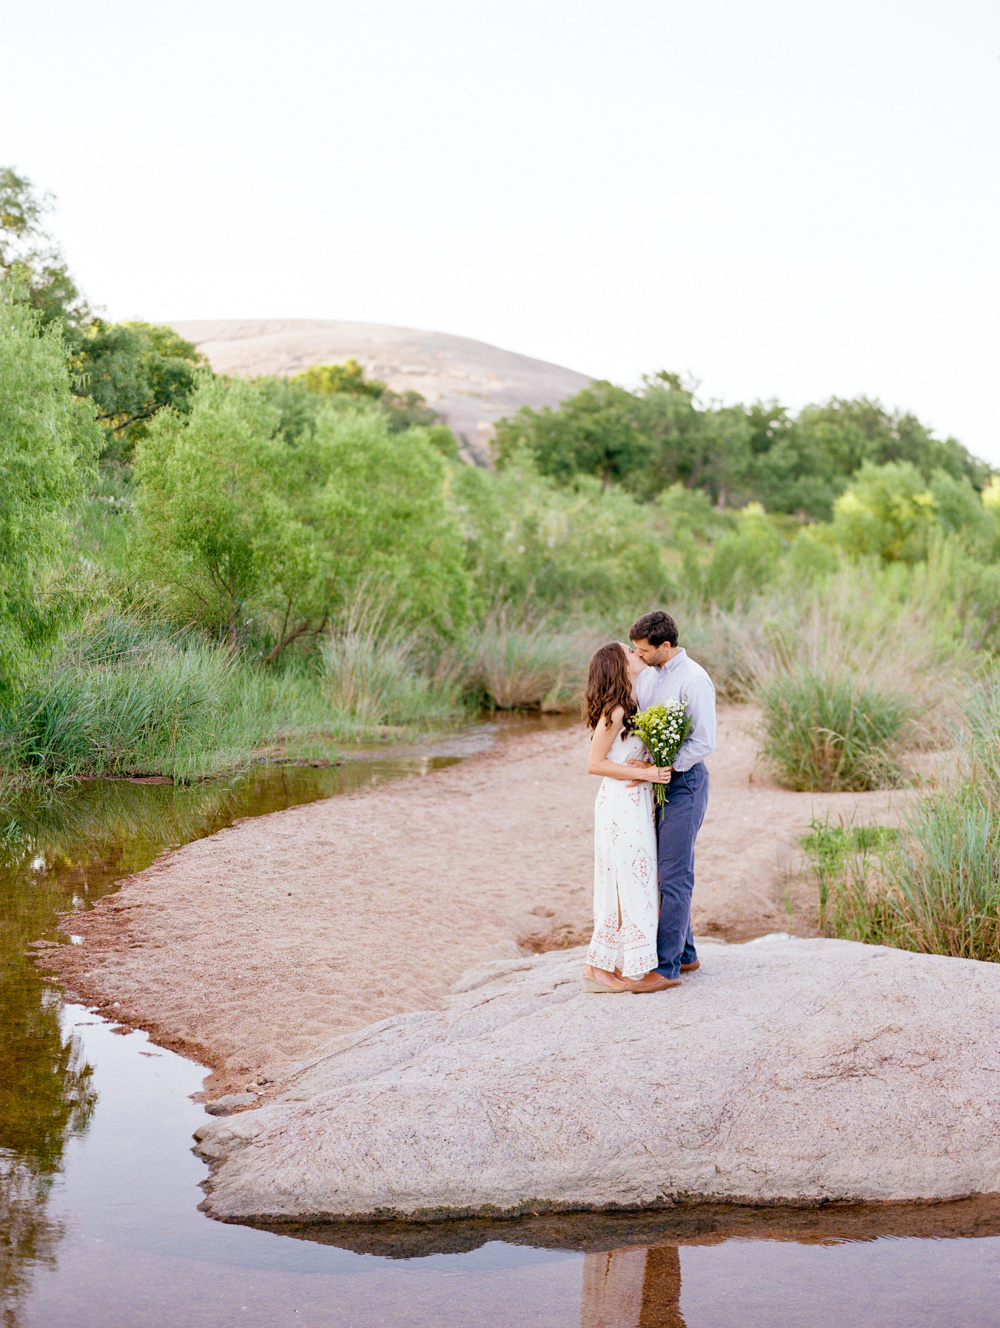 dana fernandez photography enchanted rock engagements photographer austin wedding destination film-22.jpg